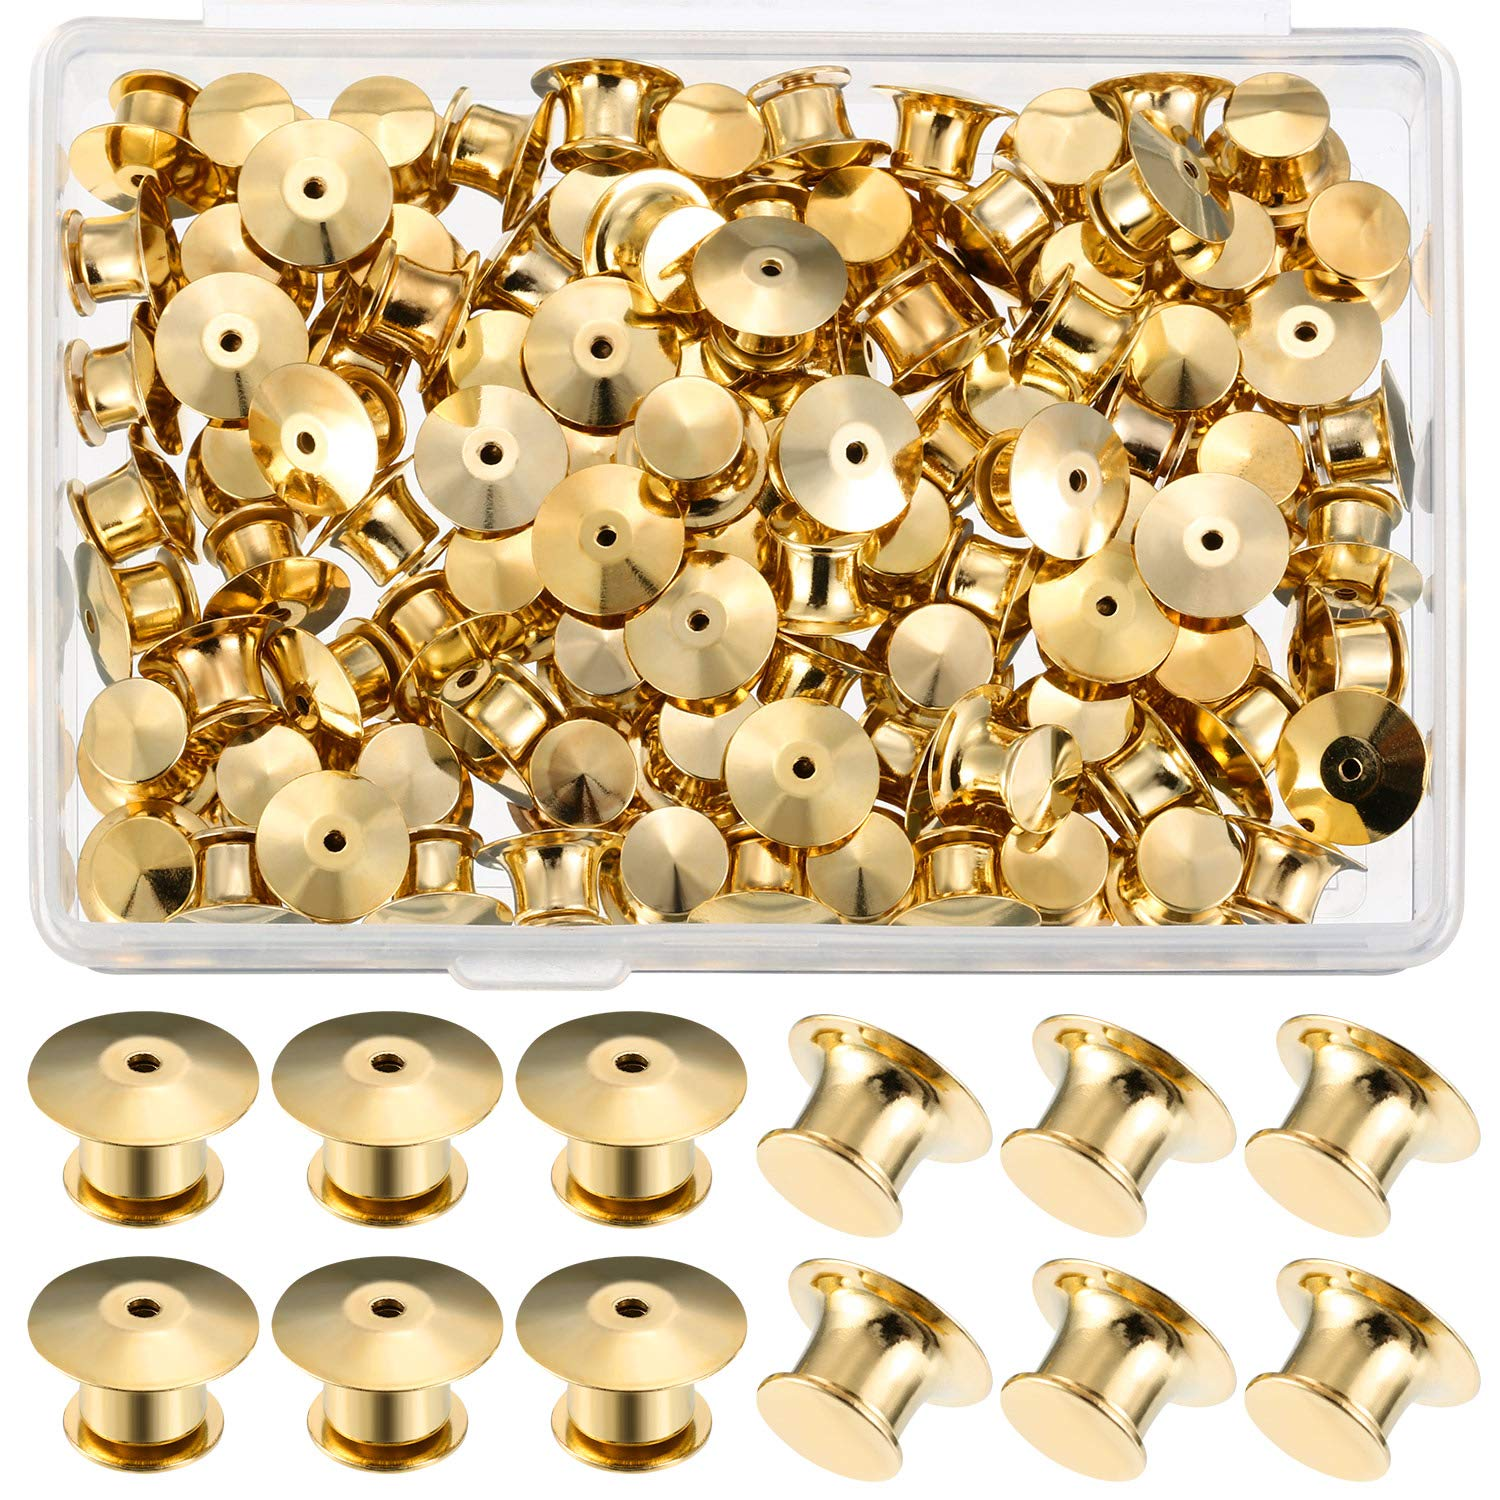 Mudder Locking Pin Keepers Backs, No Tool Required(Gold, 100 Pieces) by Mudder